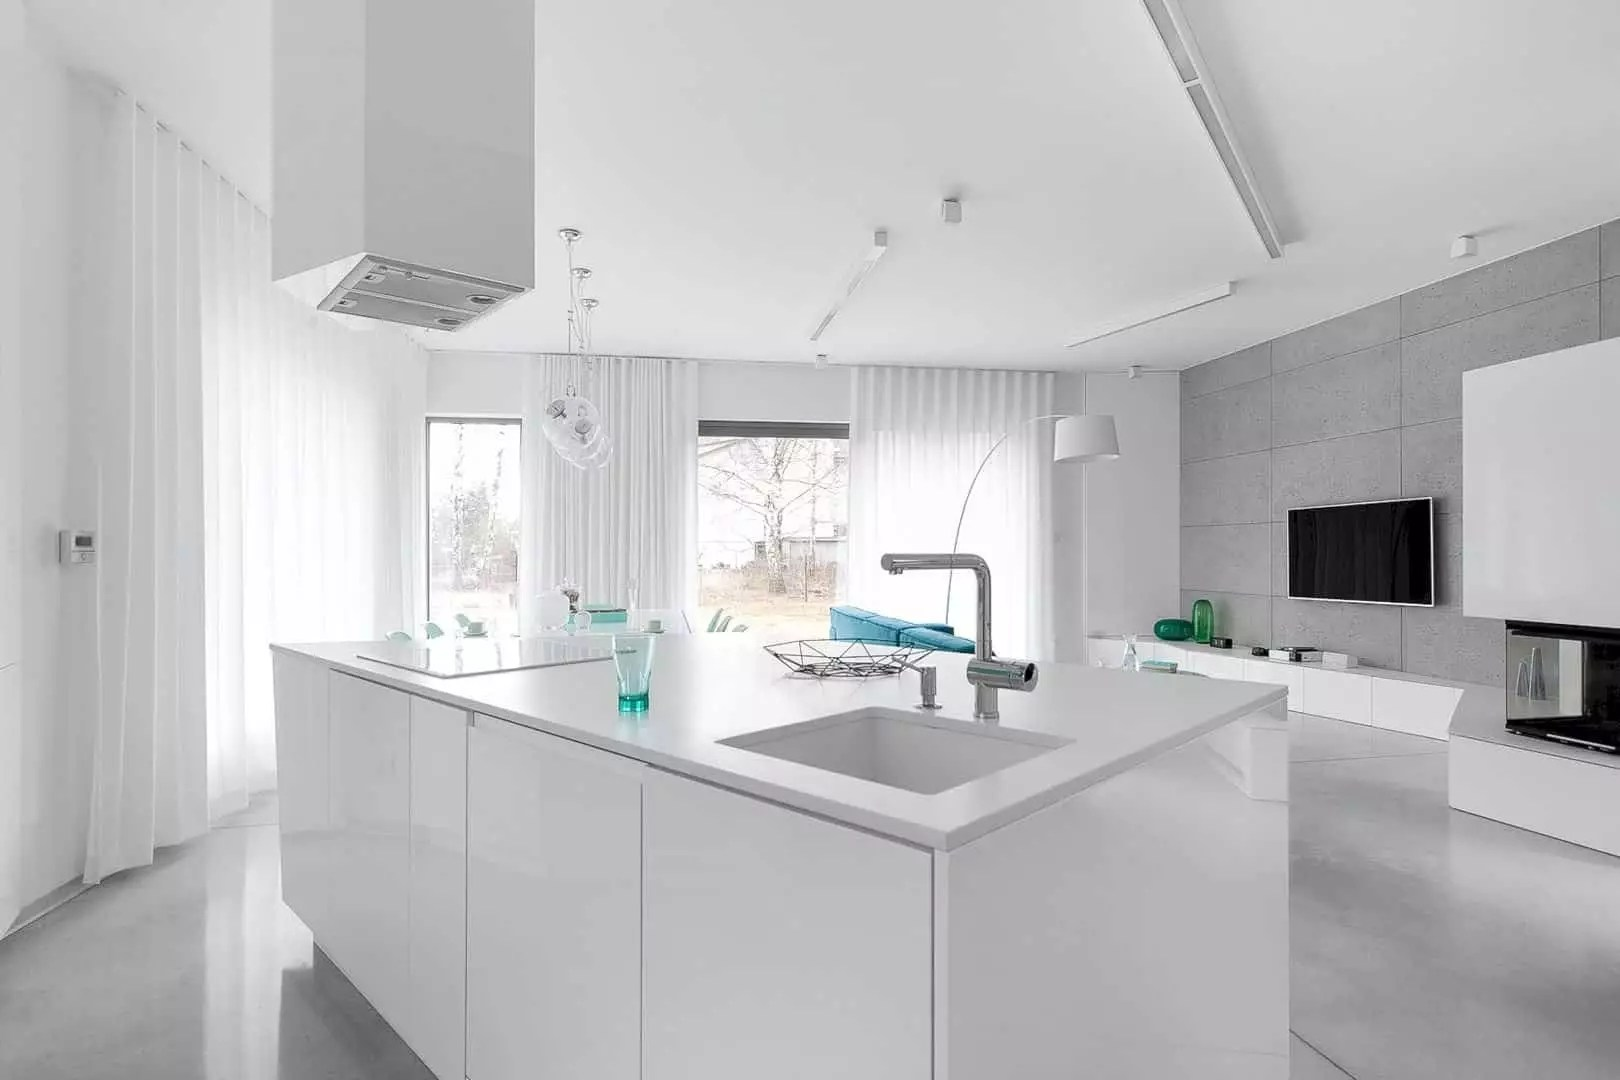 The traditional architecture modern interior and a combination of turquoise mint colors can make the interior looks spacious and also bright